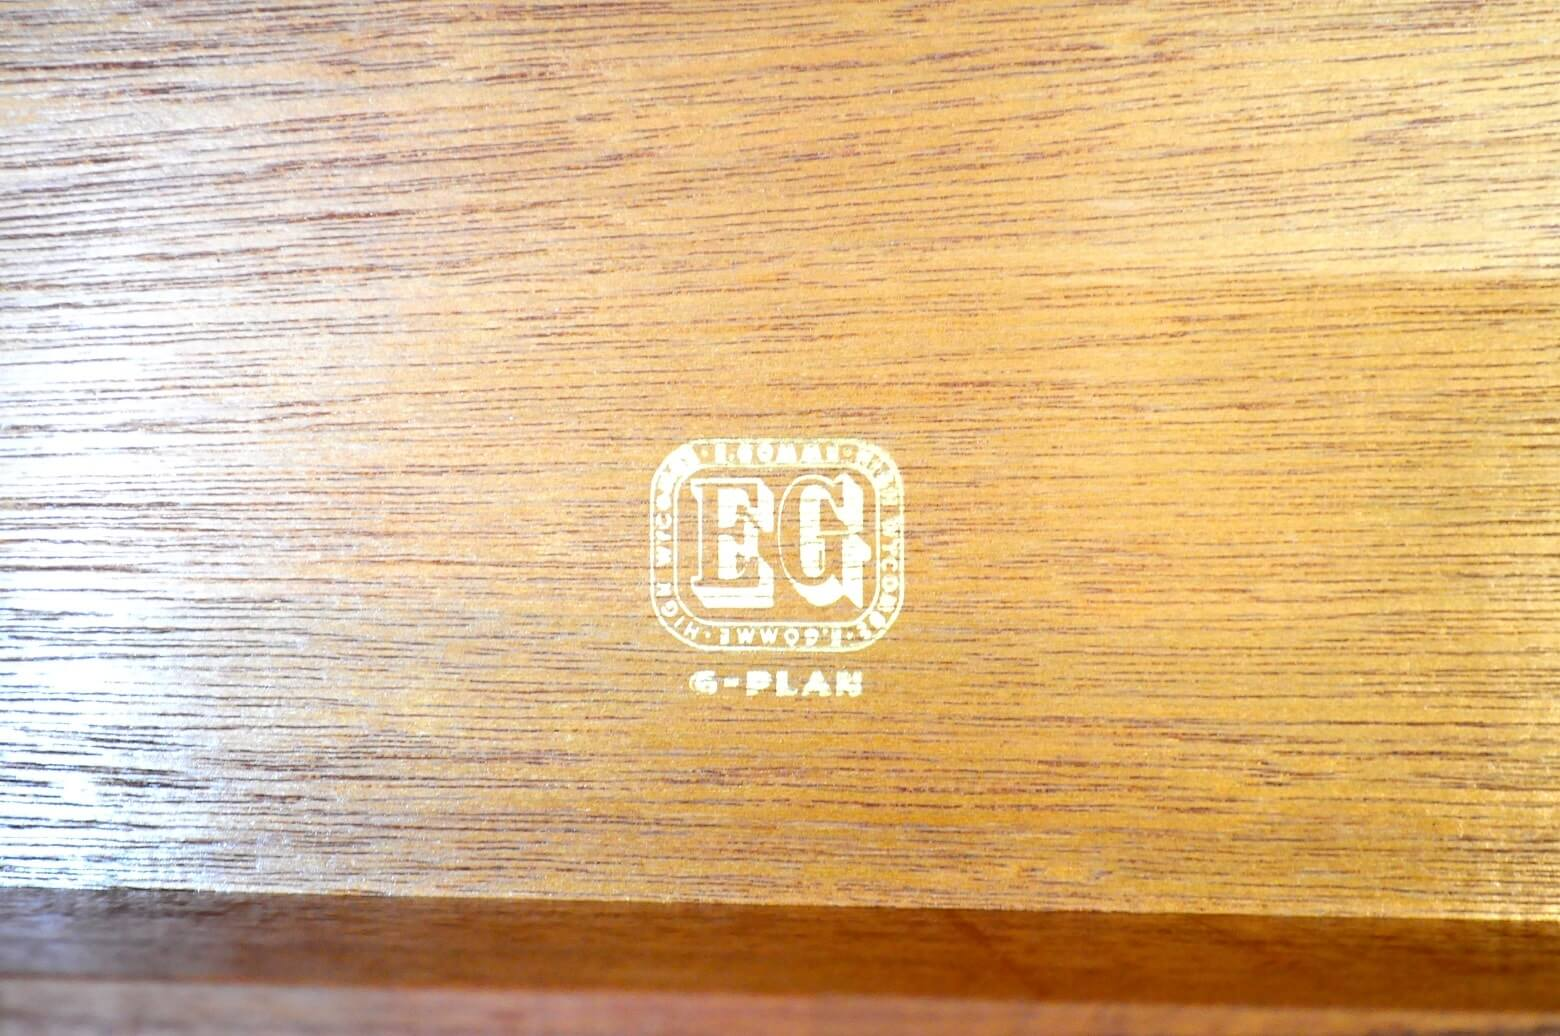 1950s vintage E GOMME G PLAN SERIES 3 Drawer CHEST / ビンテージ ジープラン チェスト